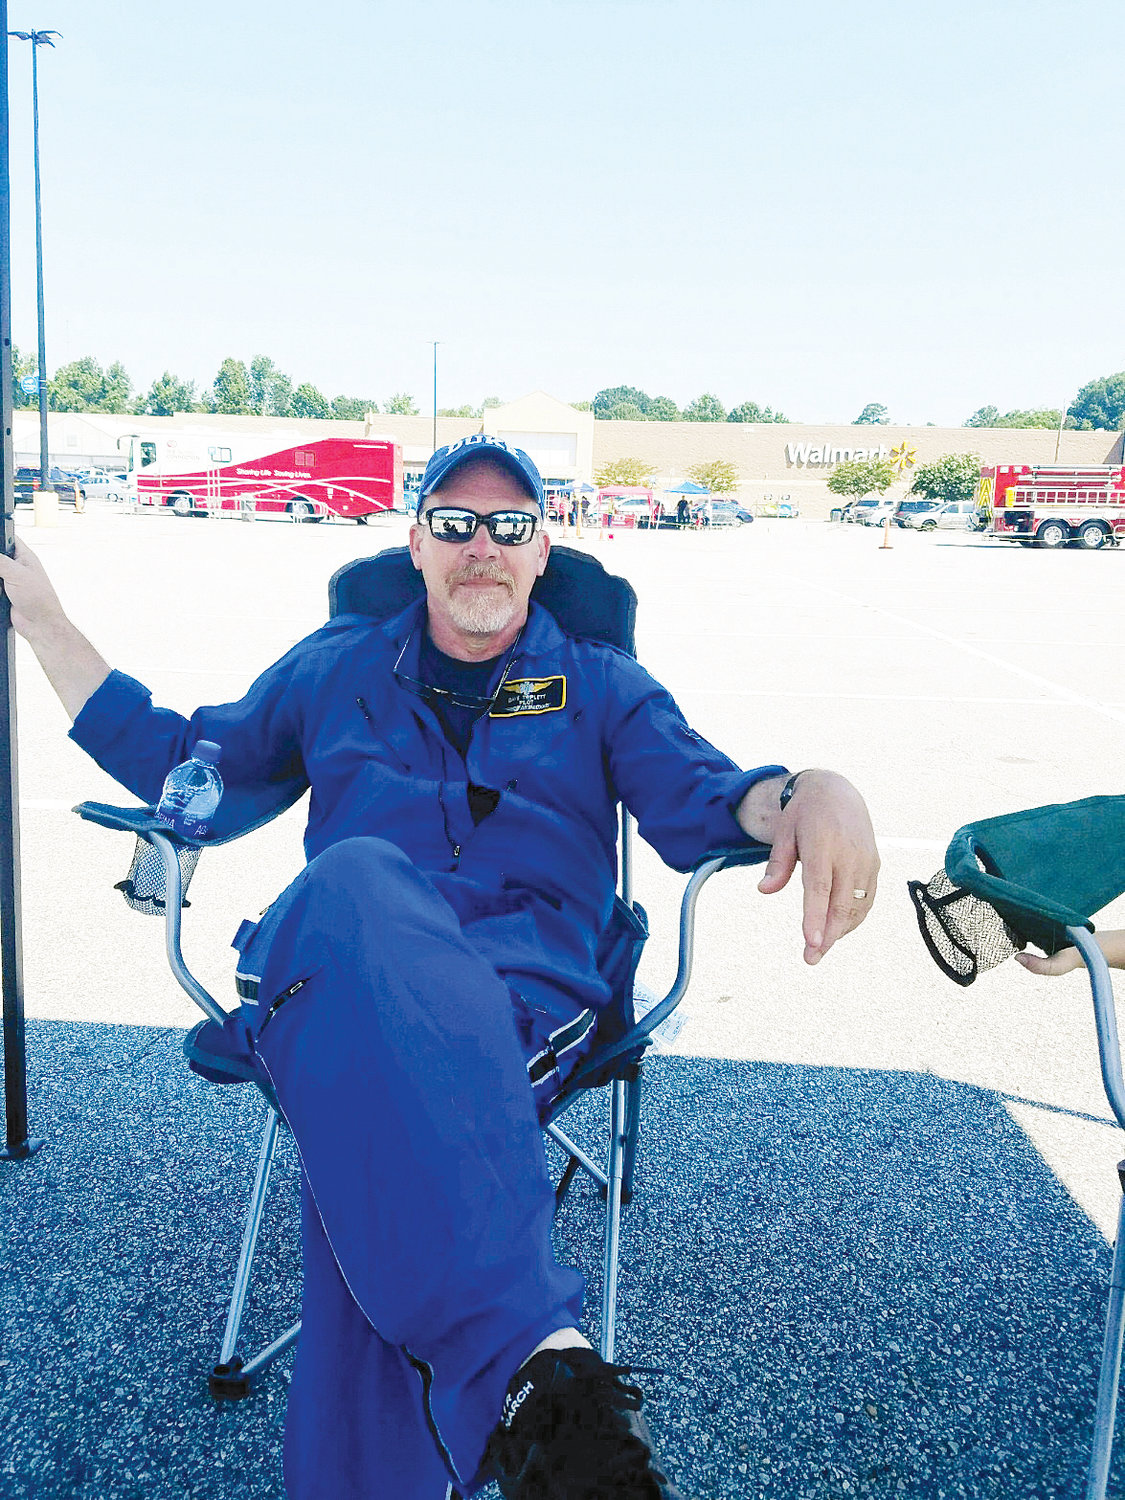 Duke Life Flight pilot Dave Triplett greeted visitors at a recent public safety event in Roxboro.